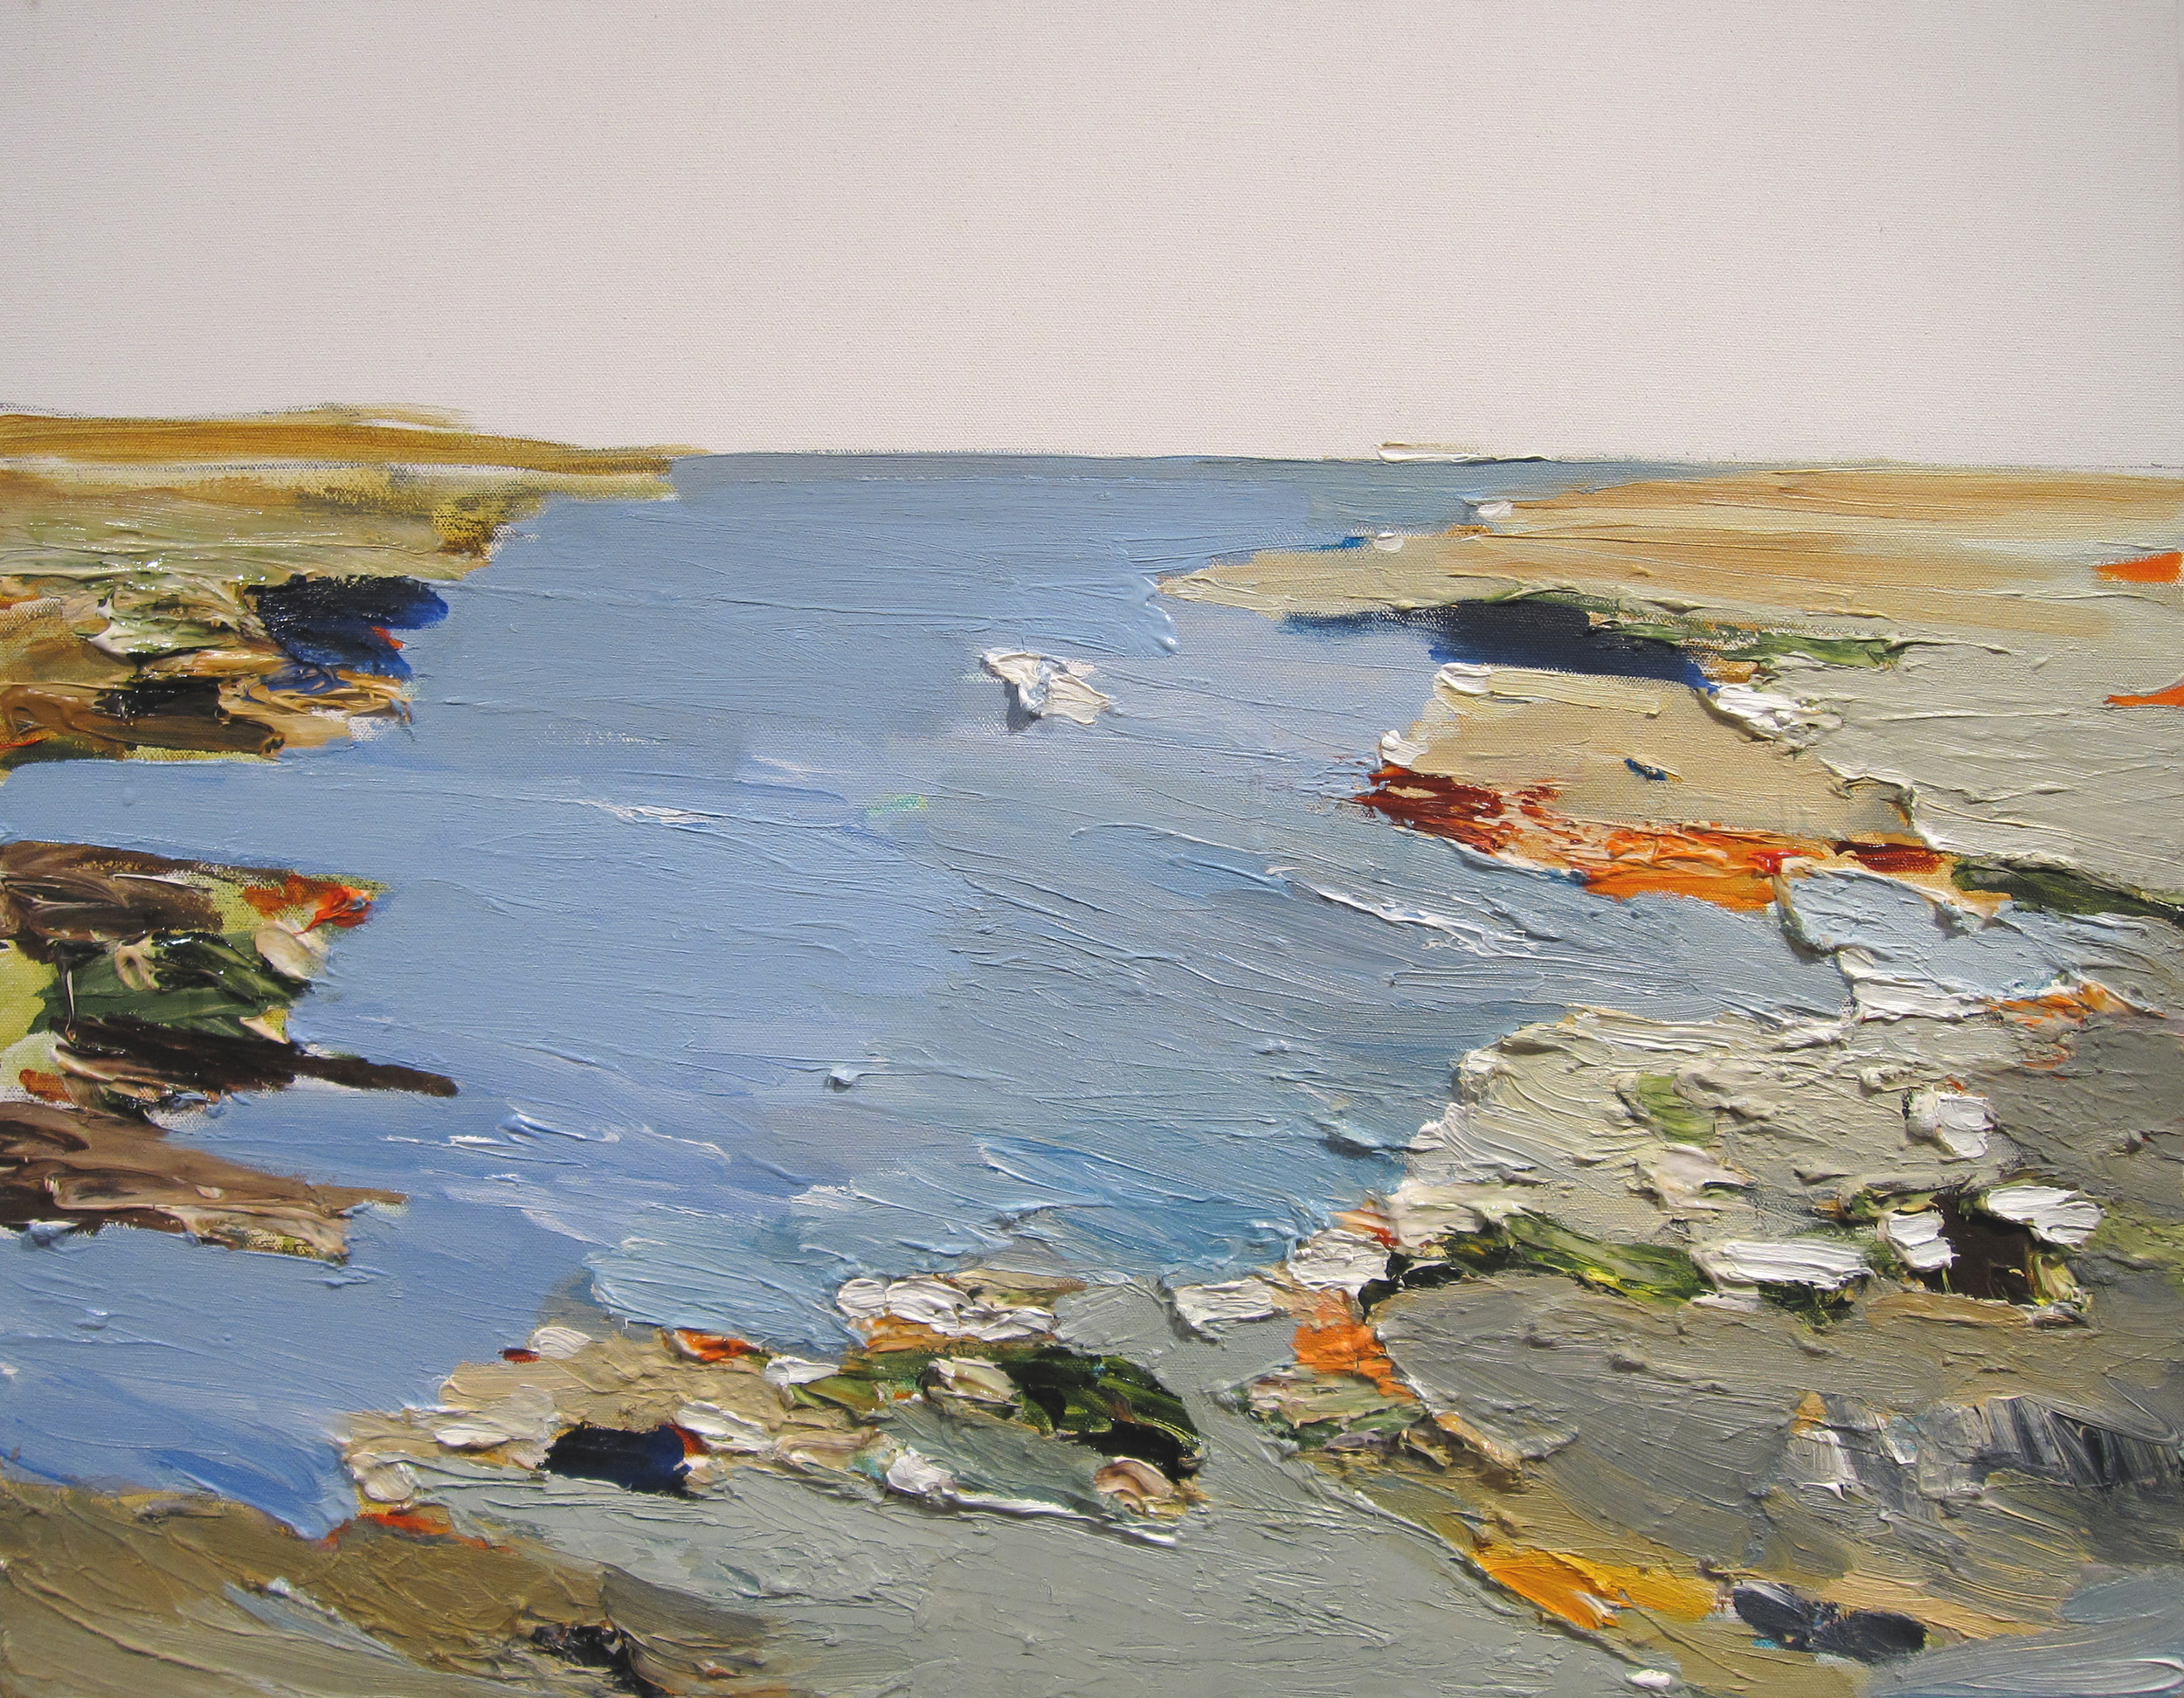 JOHN VINTON   Machias River at Frenchmens Bay  oil and acrylic on canvas, 22 x 28 inches